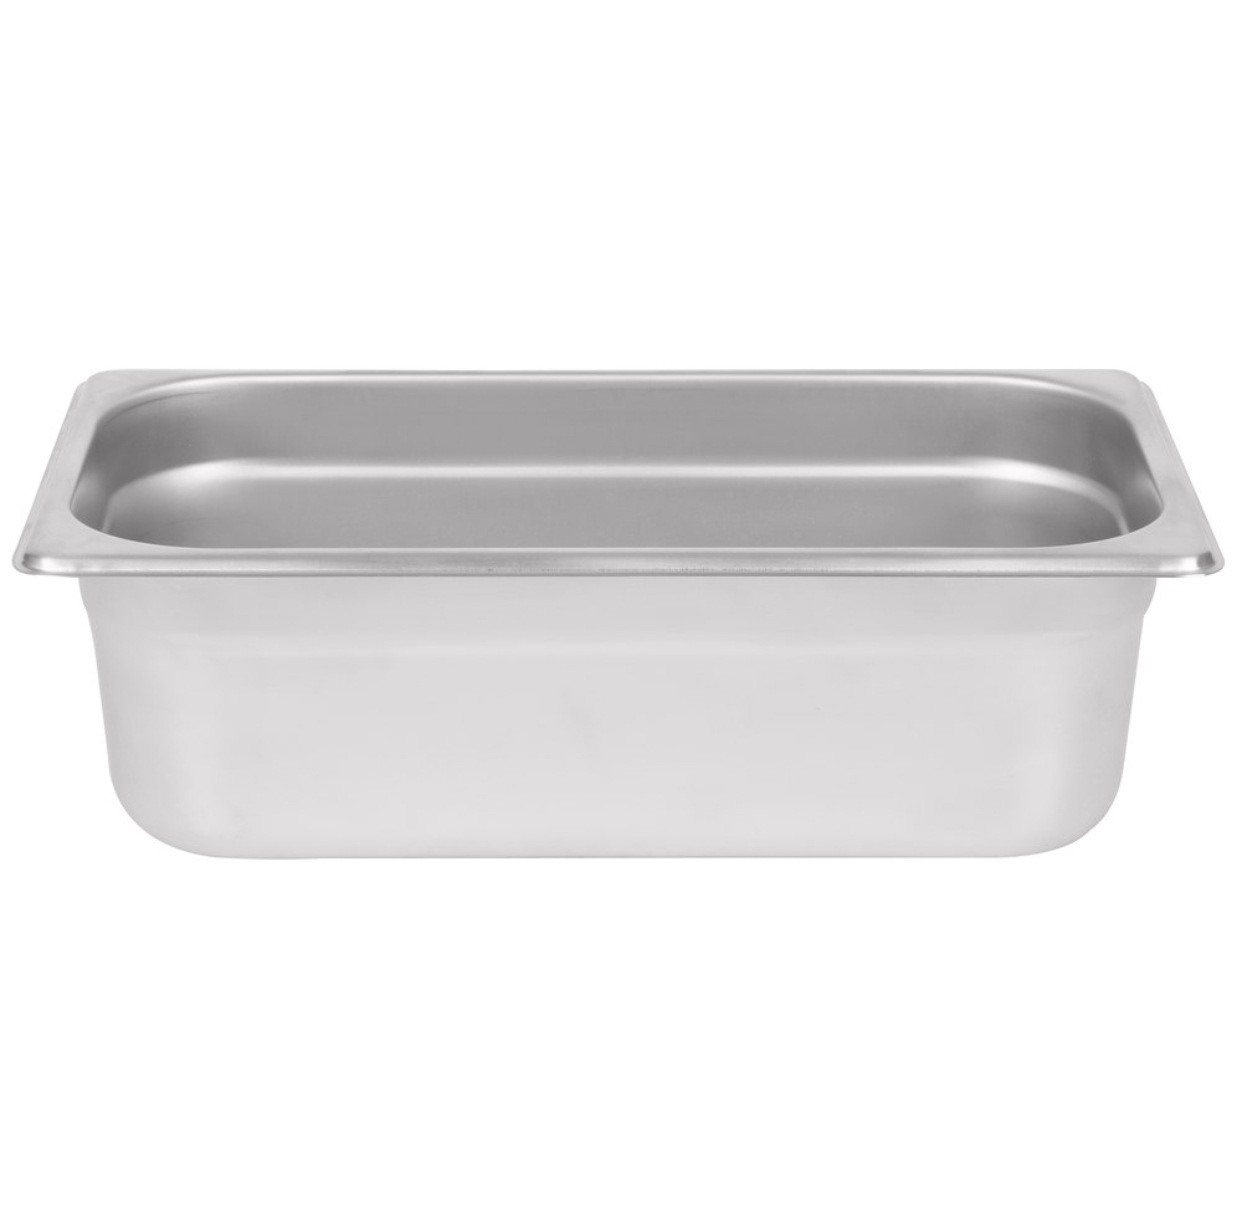 Thunder Group Stainless Steel Steam, Food, and Hotel Pan 1/3 Size, Stainless Steel - eKitchenary